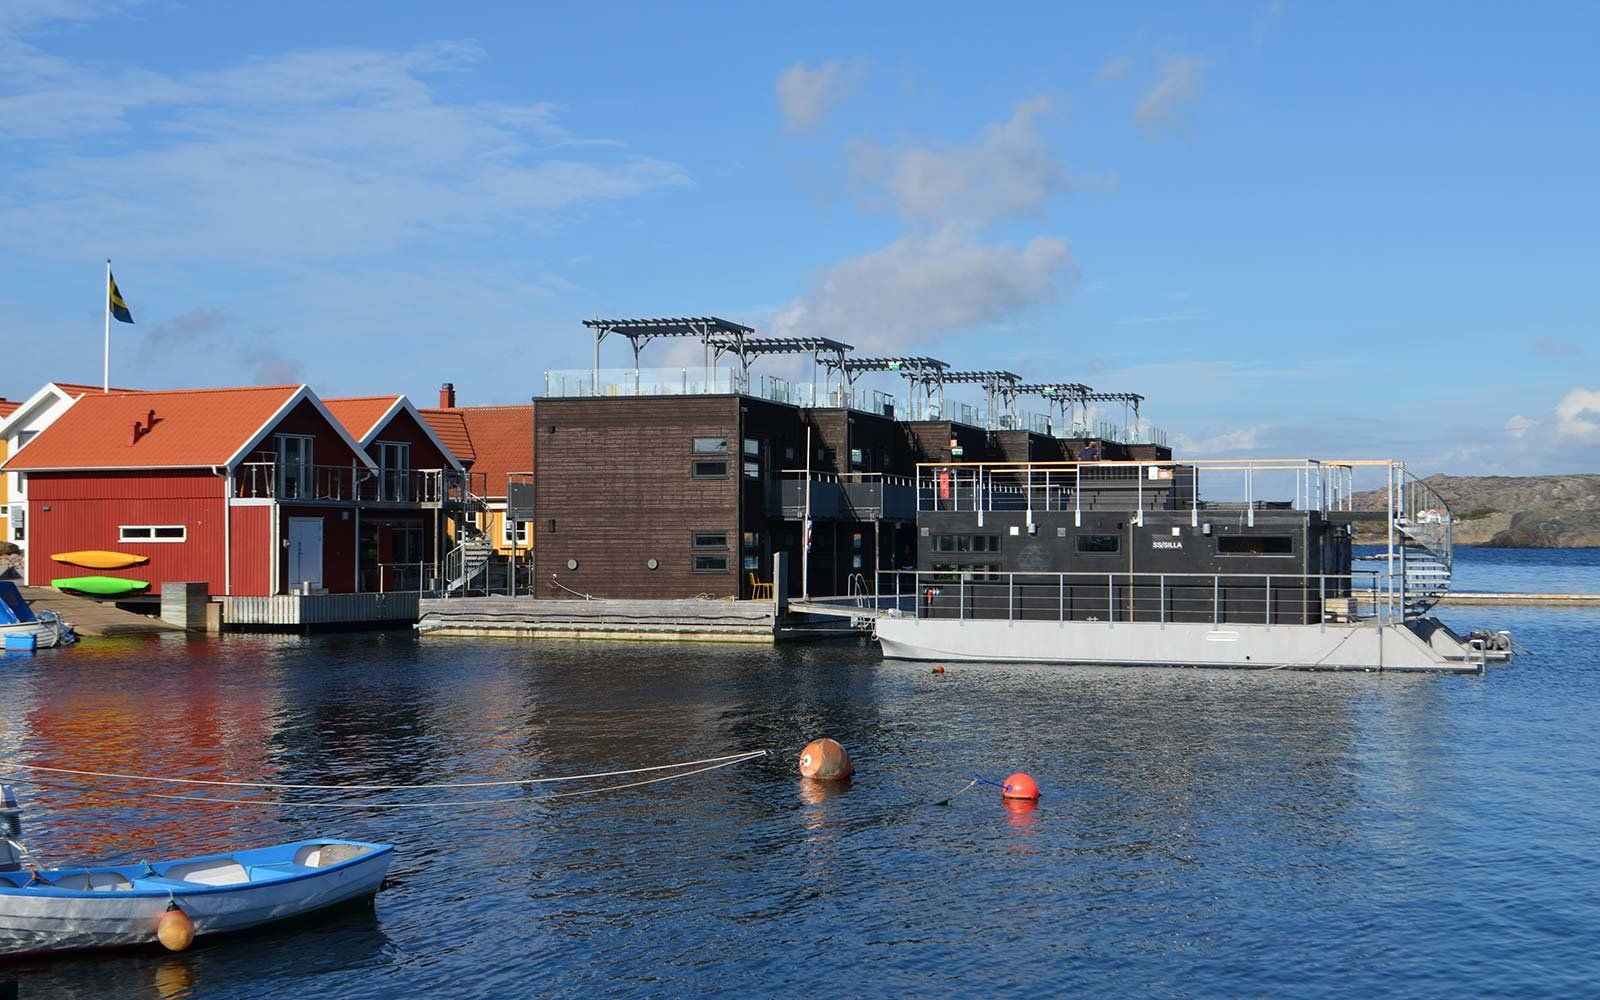 Salt & Sill Sweden floating hotel